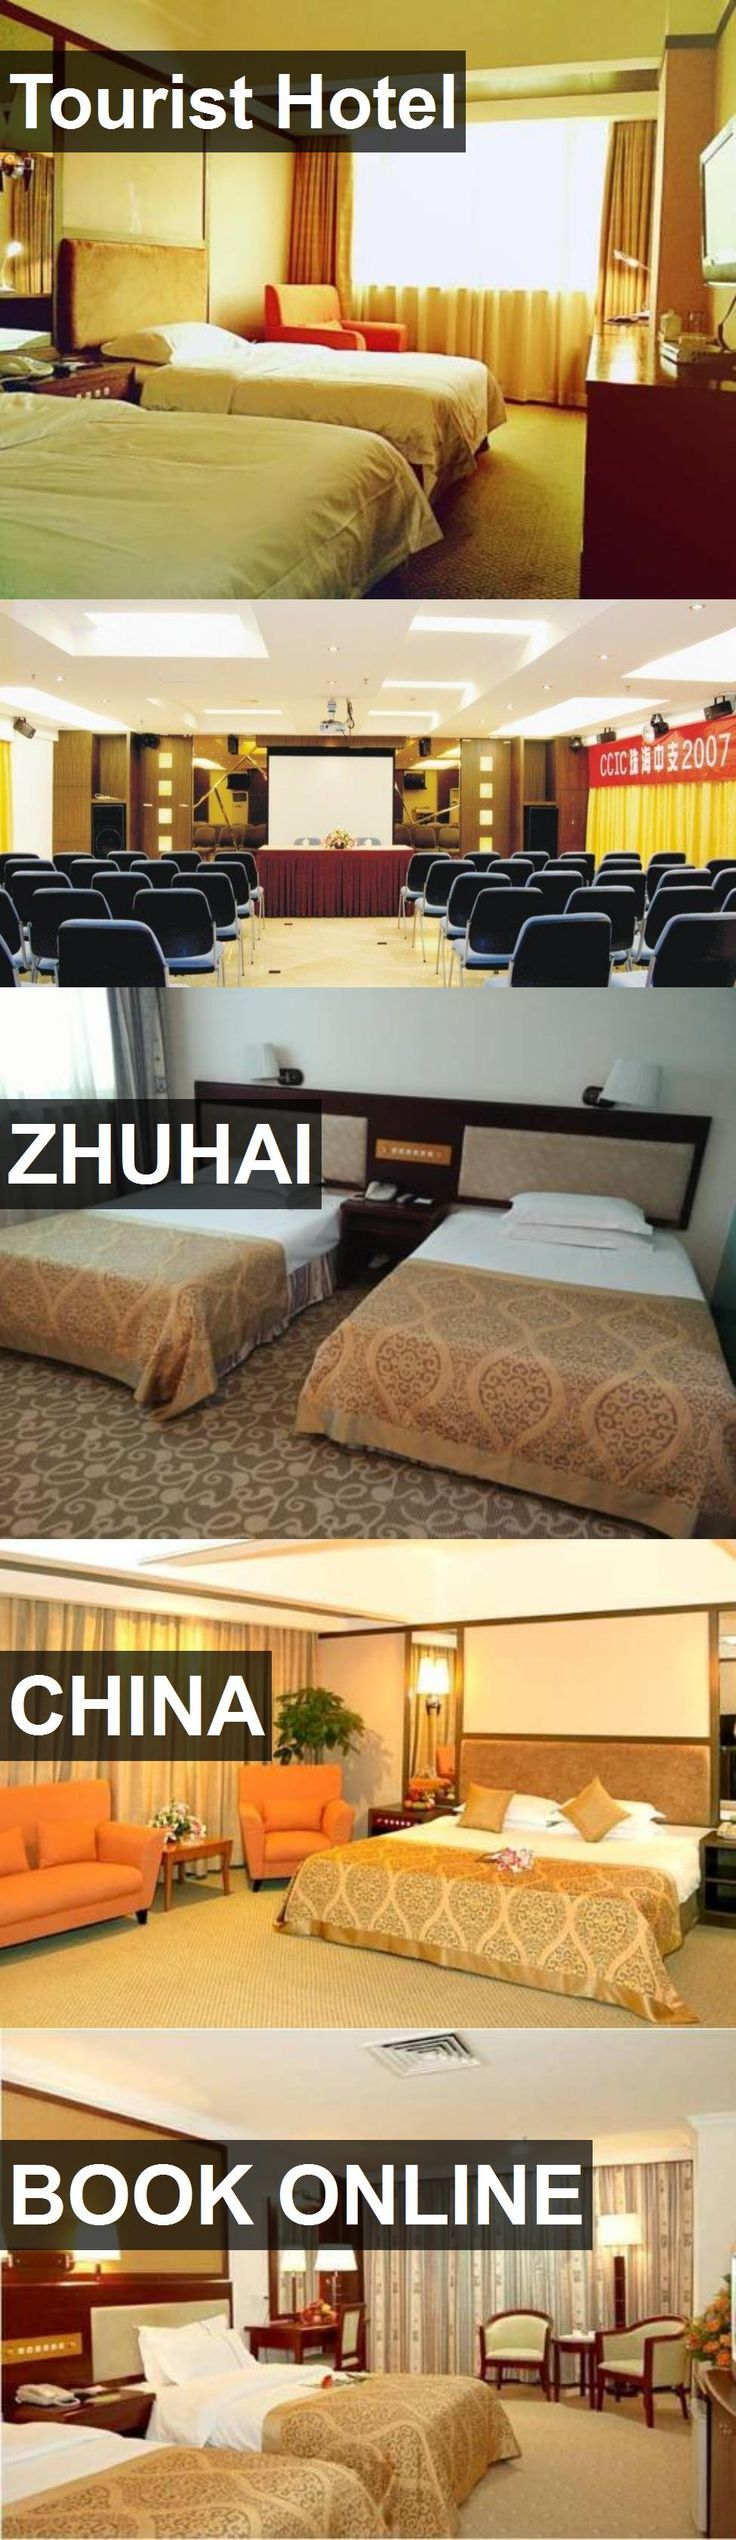 Tourist Hotel in Zhuhai, China. For more information, photos, reviews and best prices please follow the link. #China #Zhuhai #travel #vacation #hotel